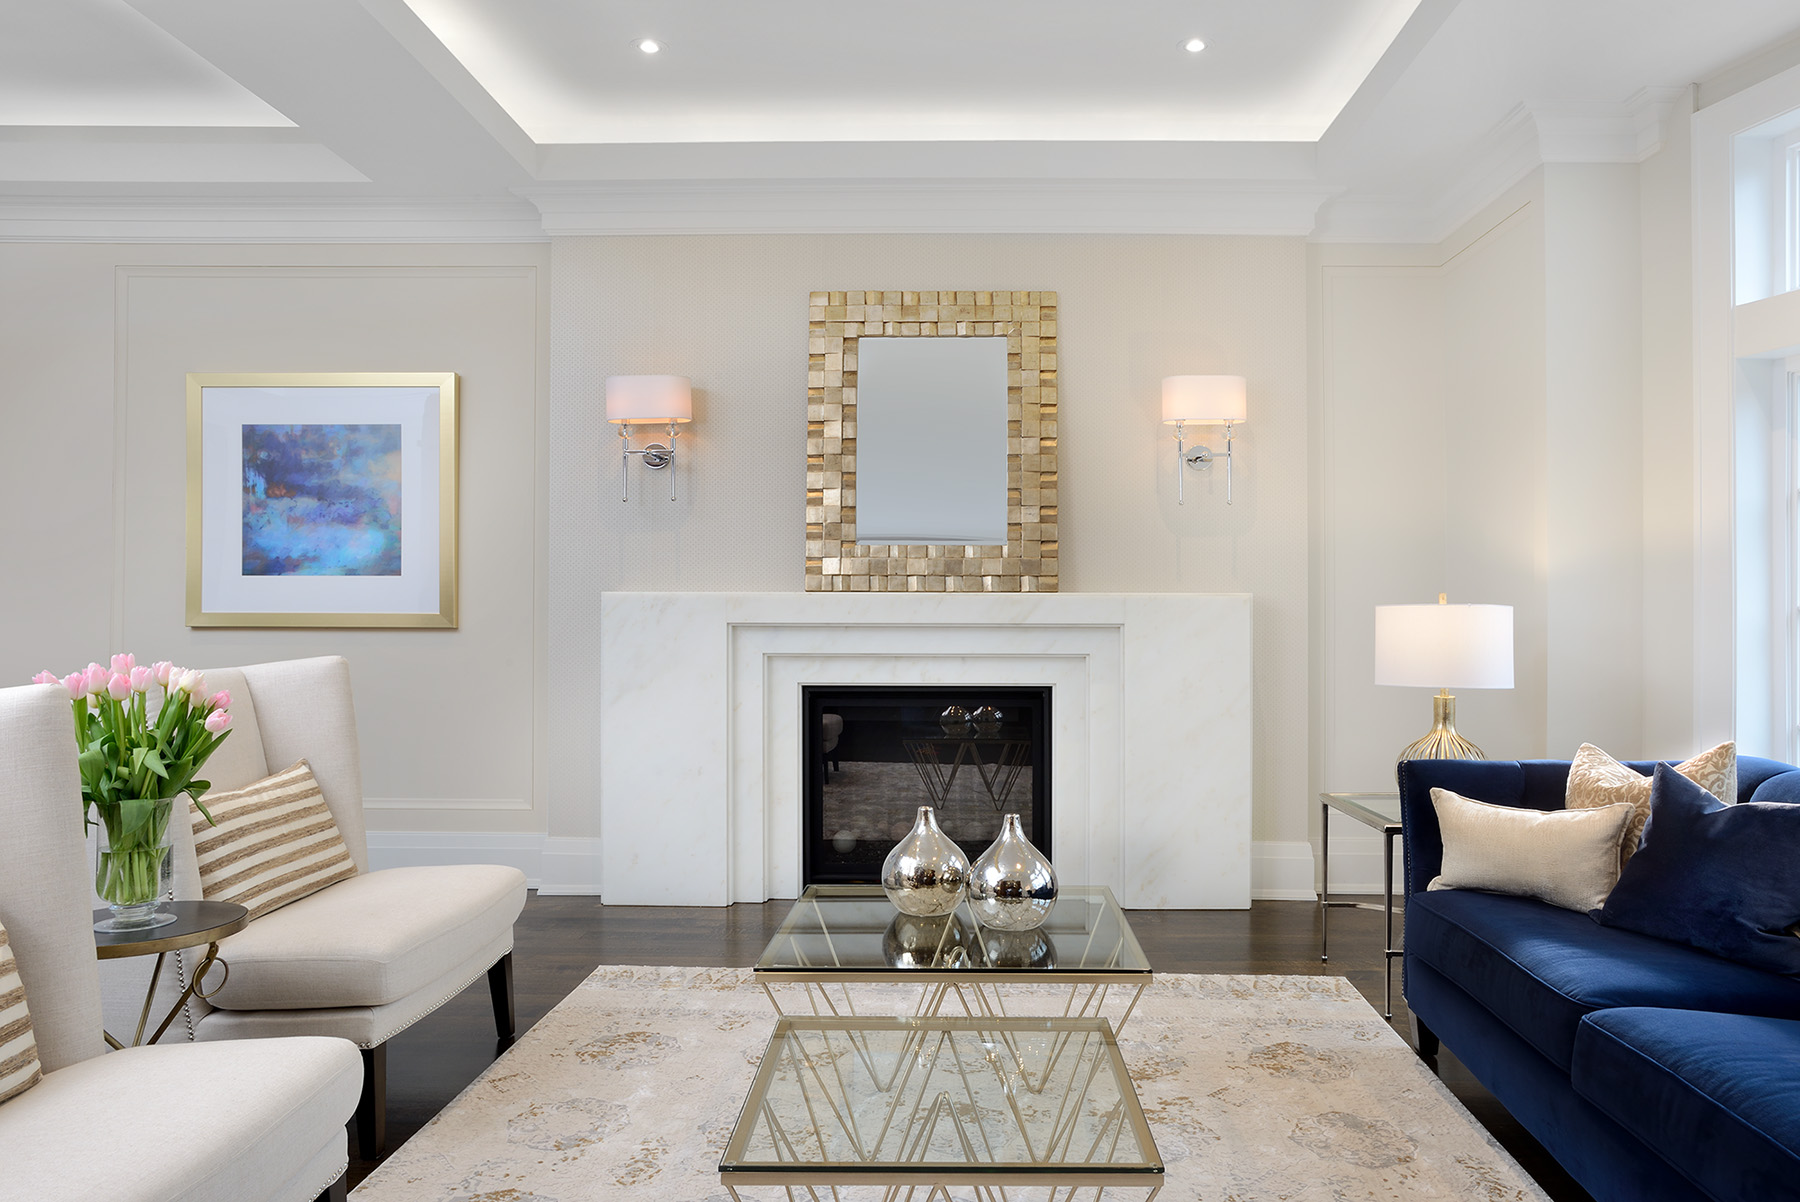 Transitional - The shape and squared off details of the marble fireplace are reflected in the ceiling which has led lighting as an added feature for ambiance.